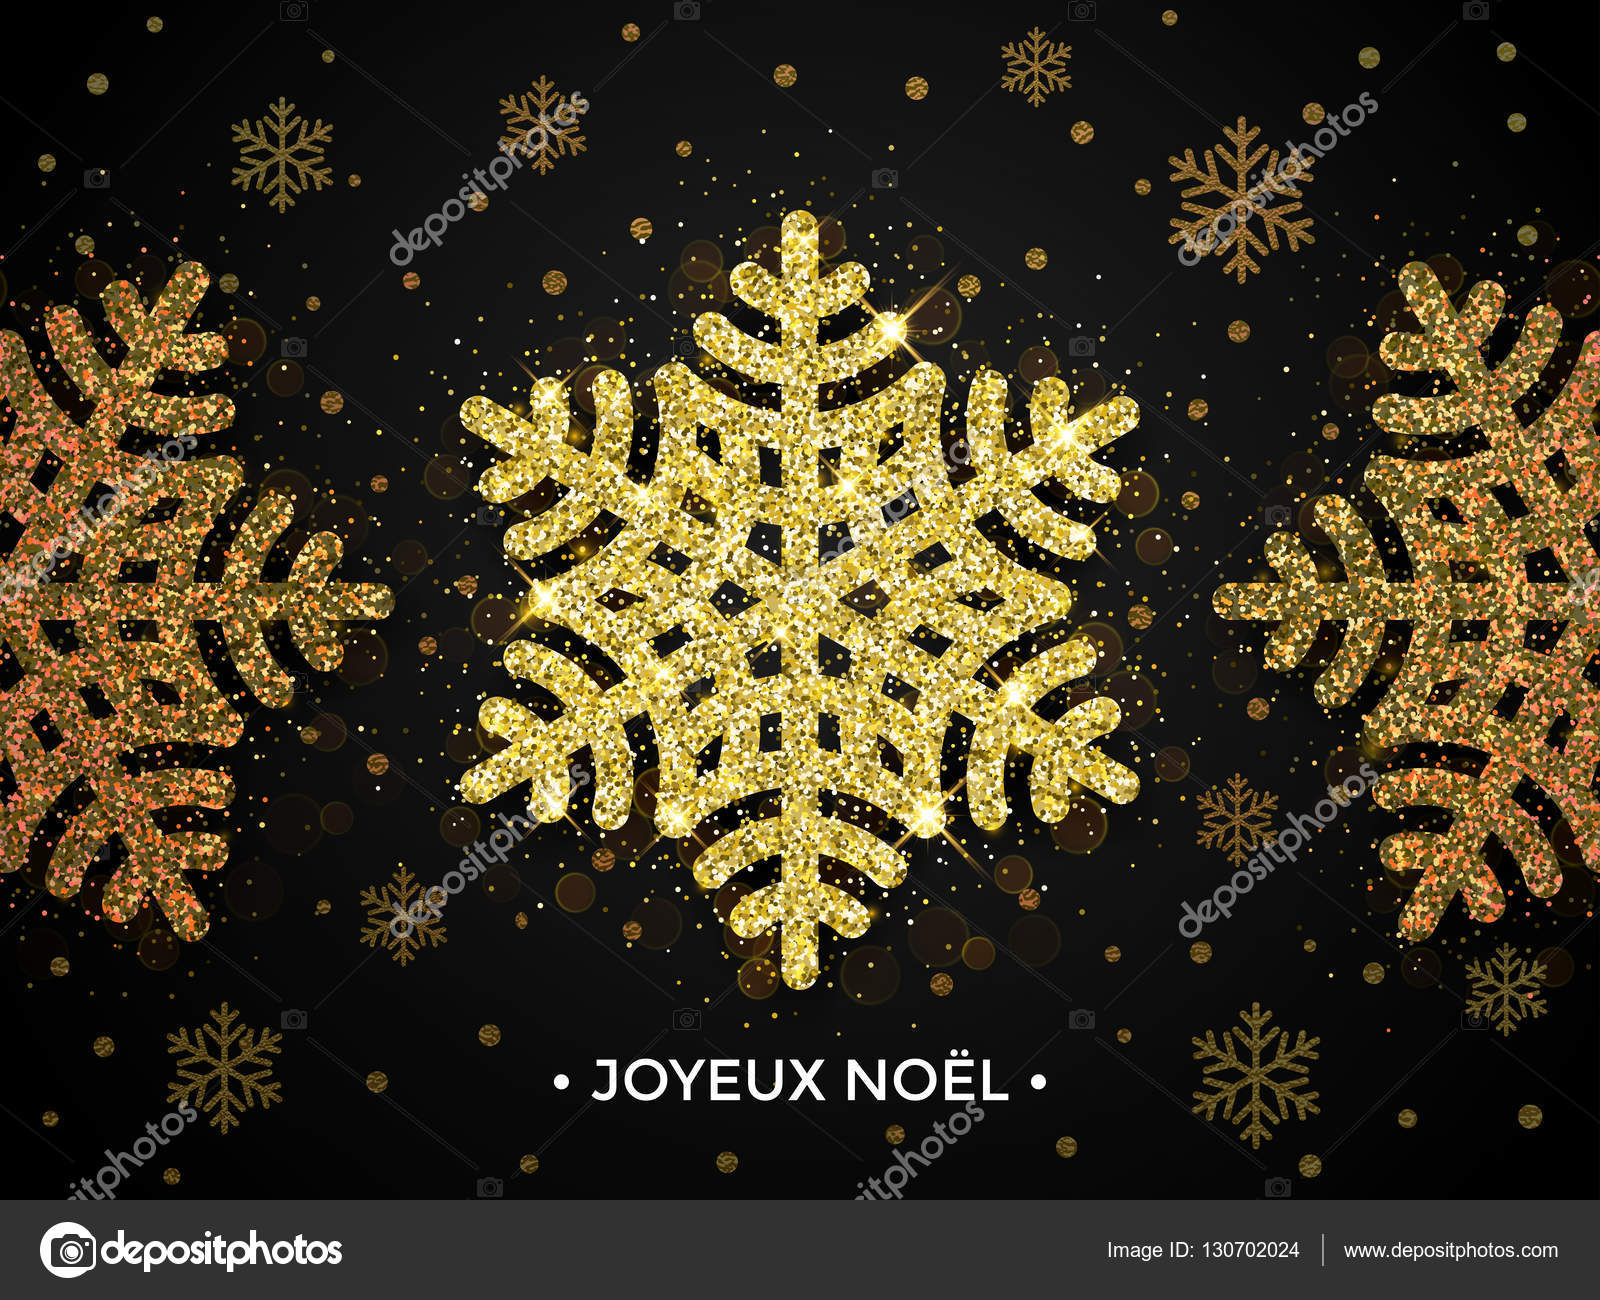 Joyeux noel french christmas greeting card stock vector french christmas greeting card stock vector m4hsunfo